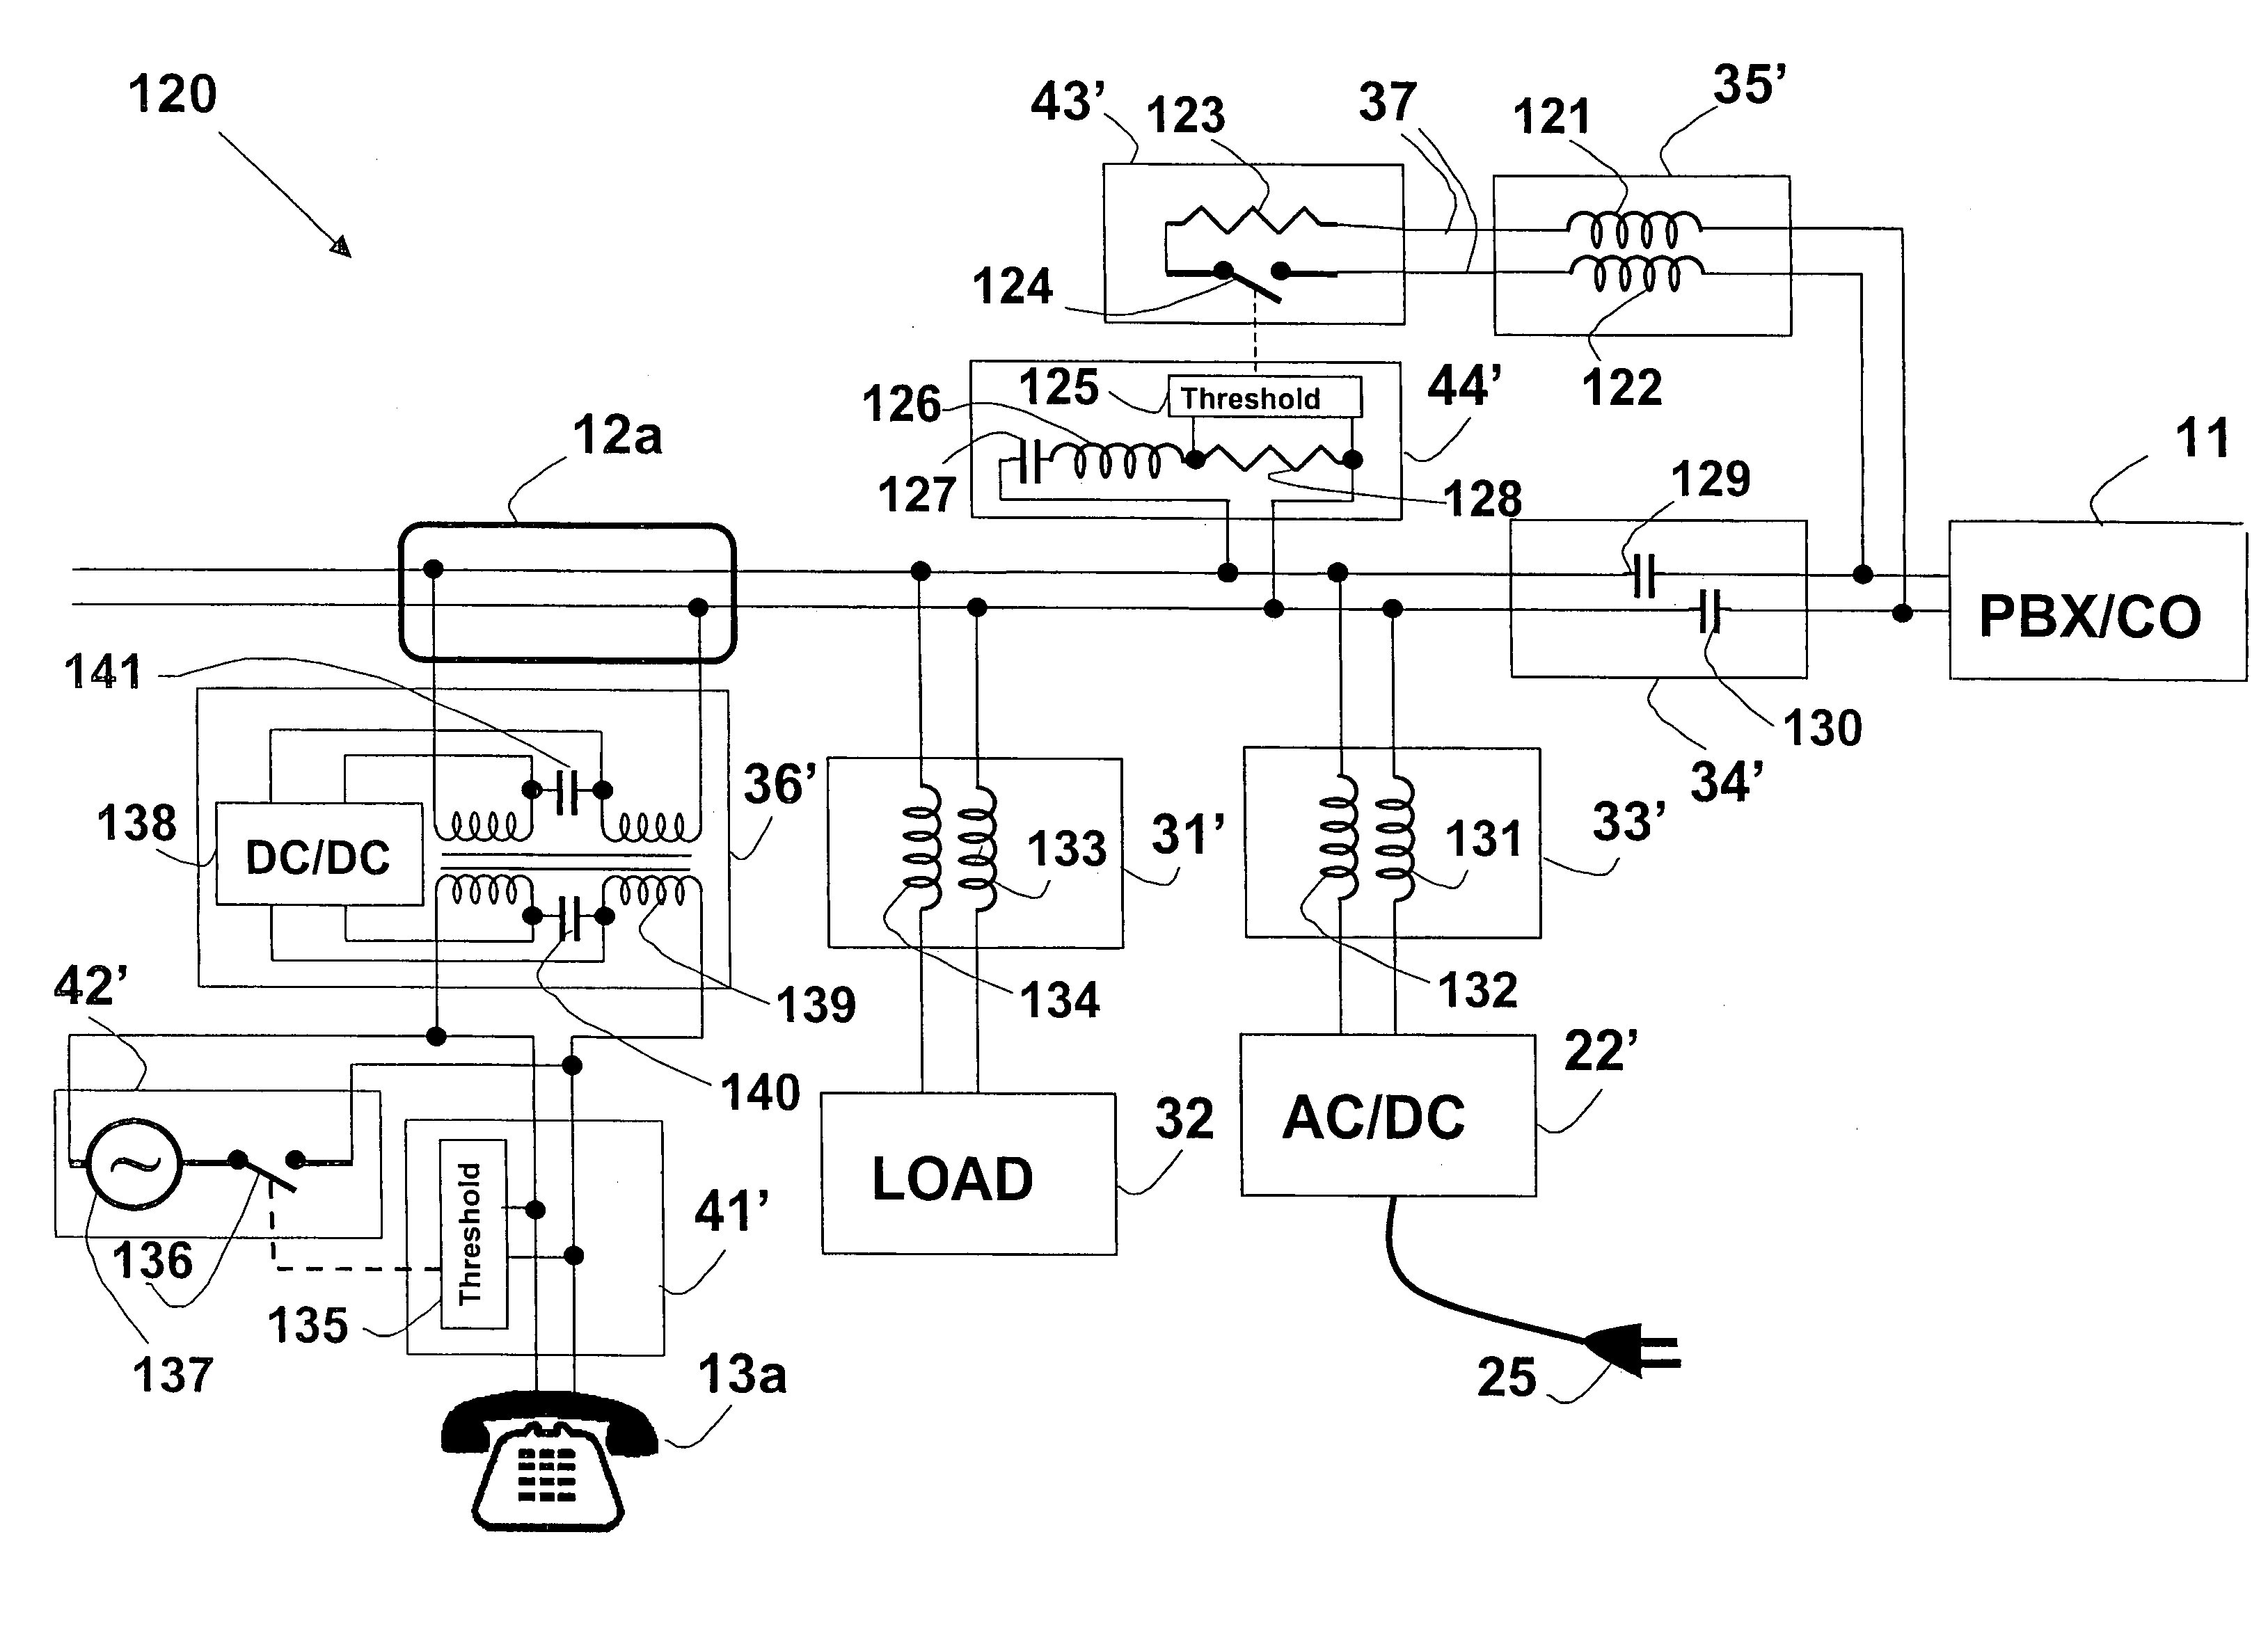 Patent Us8787562 Method And System For Providing Dc Power On Local 60 Hz Band Reject Filter Public Circuit Online Simulator Drawing